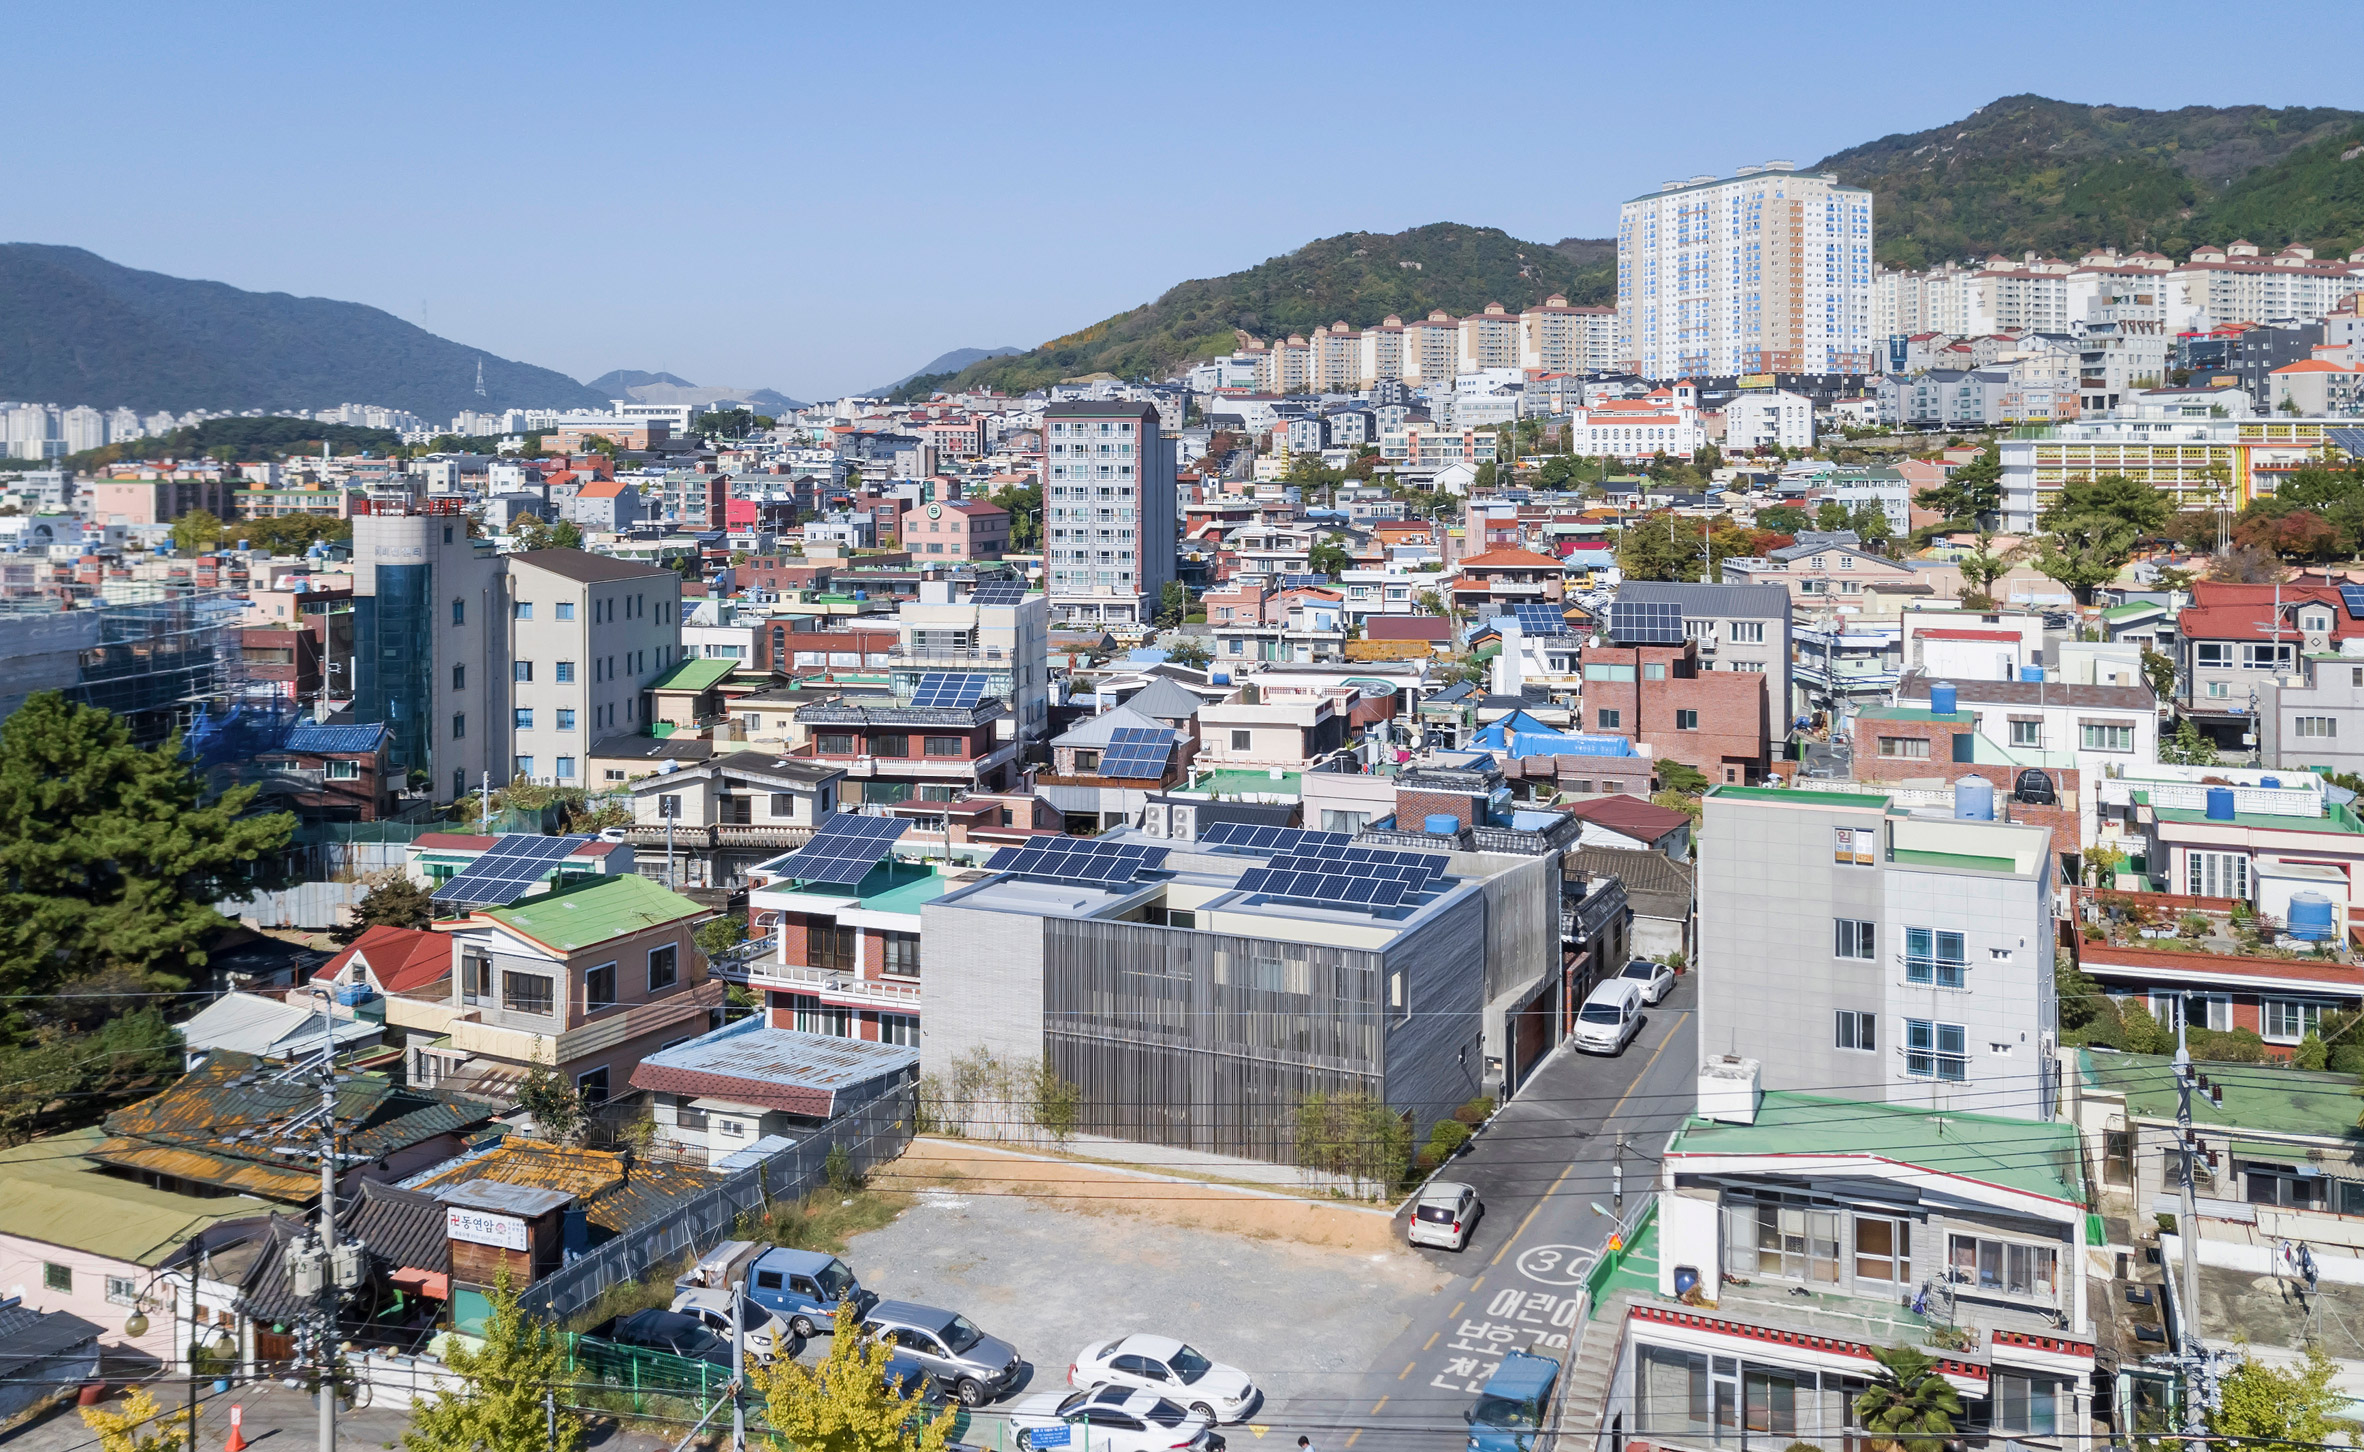 steel-grove-augmented-reality-architecture-residential-south-korea-courtyards-steel_dezeen_2364_col_29.jpg